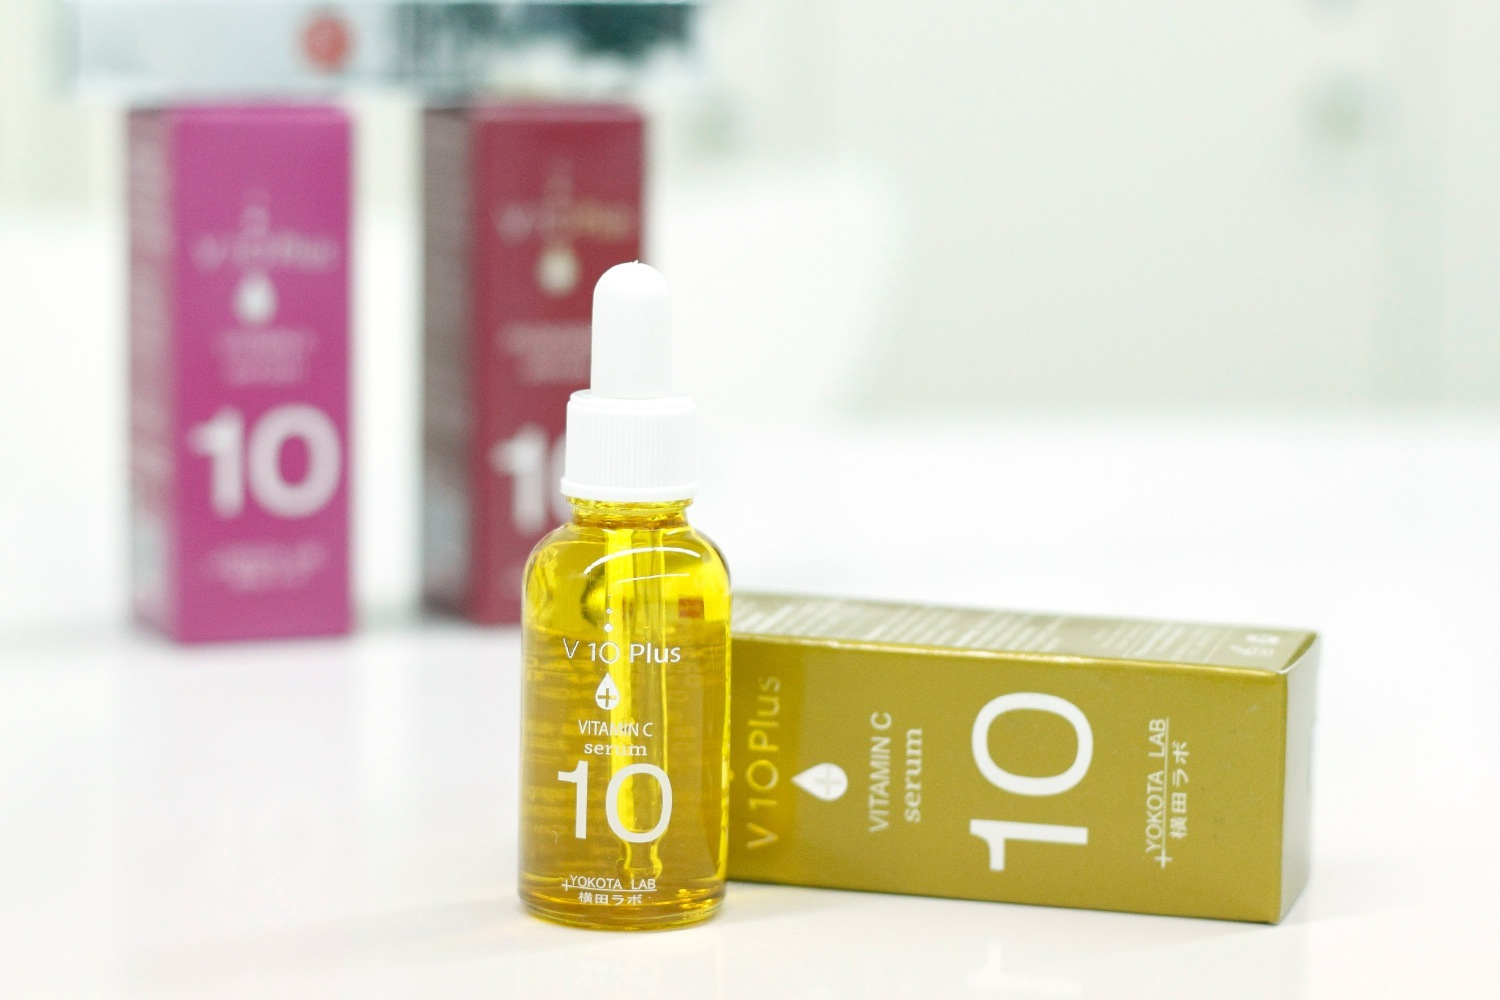 20150205-v10-plus-beauty-essence-vitamin-c-serum